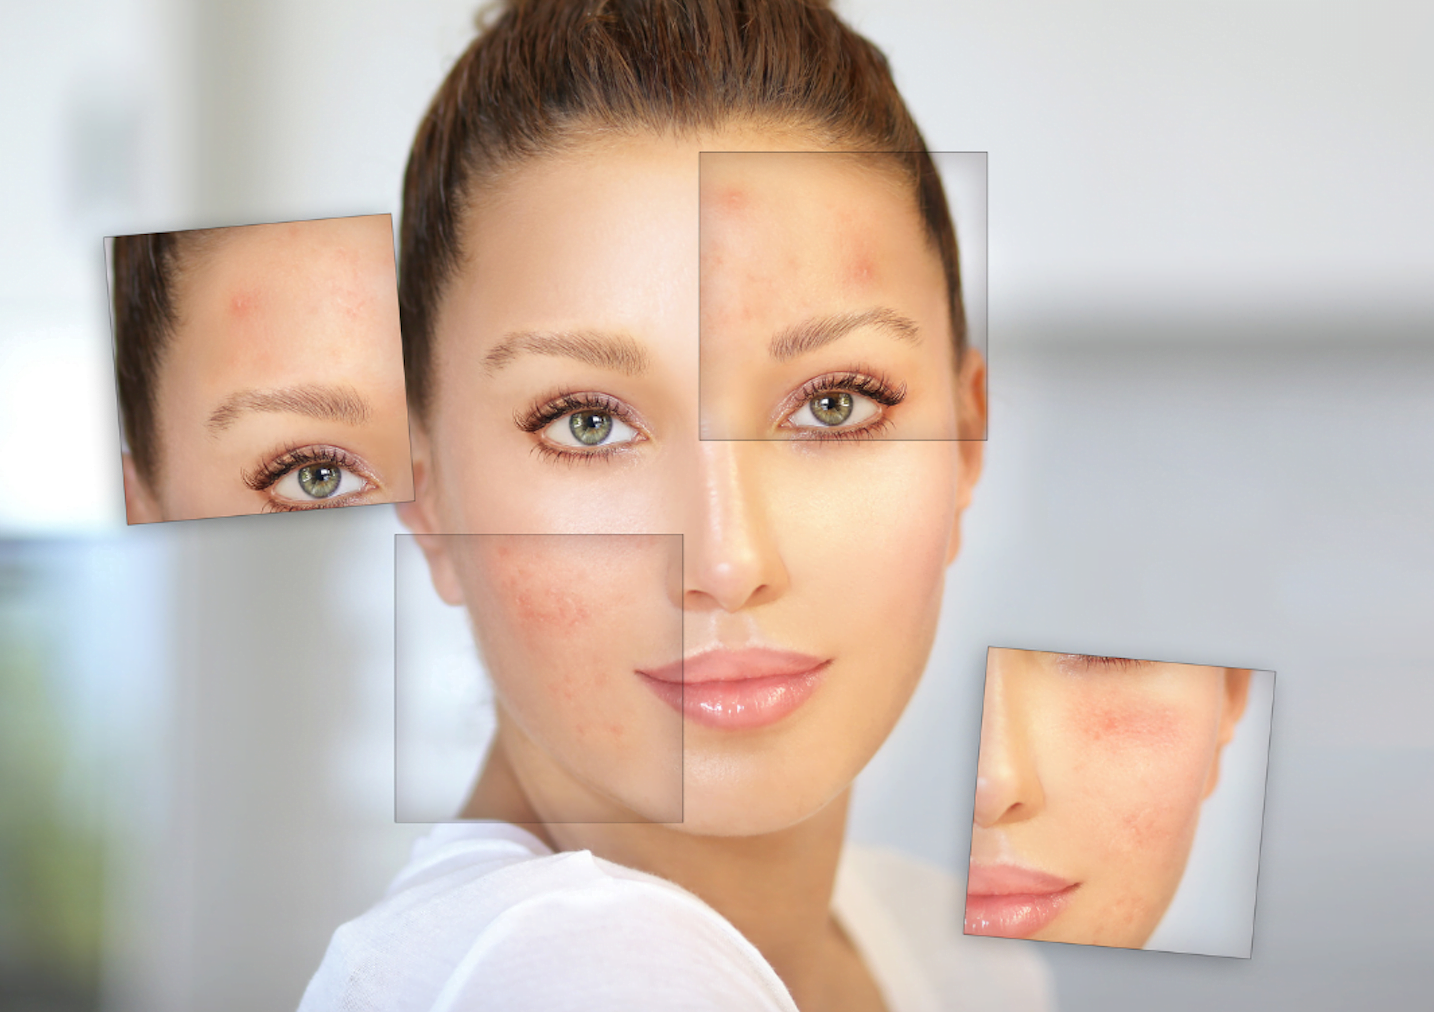 Can you prevent acne?